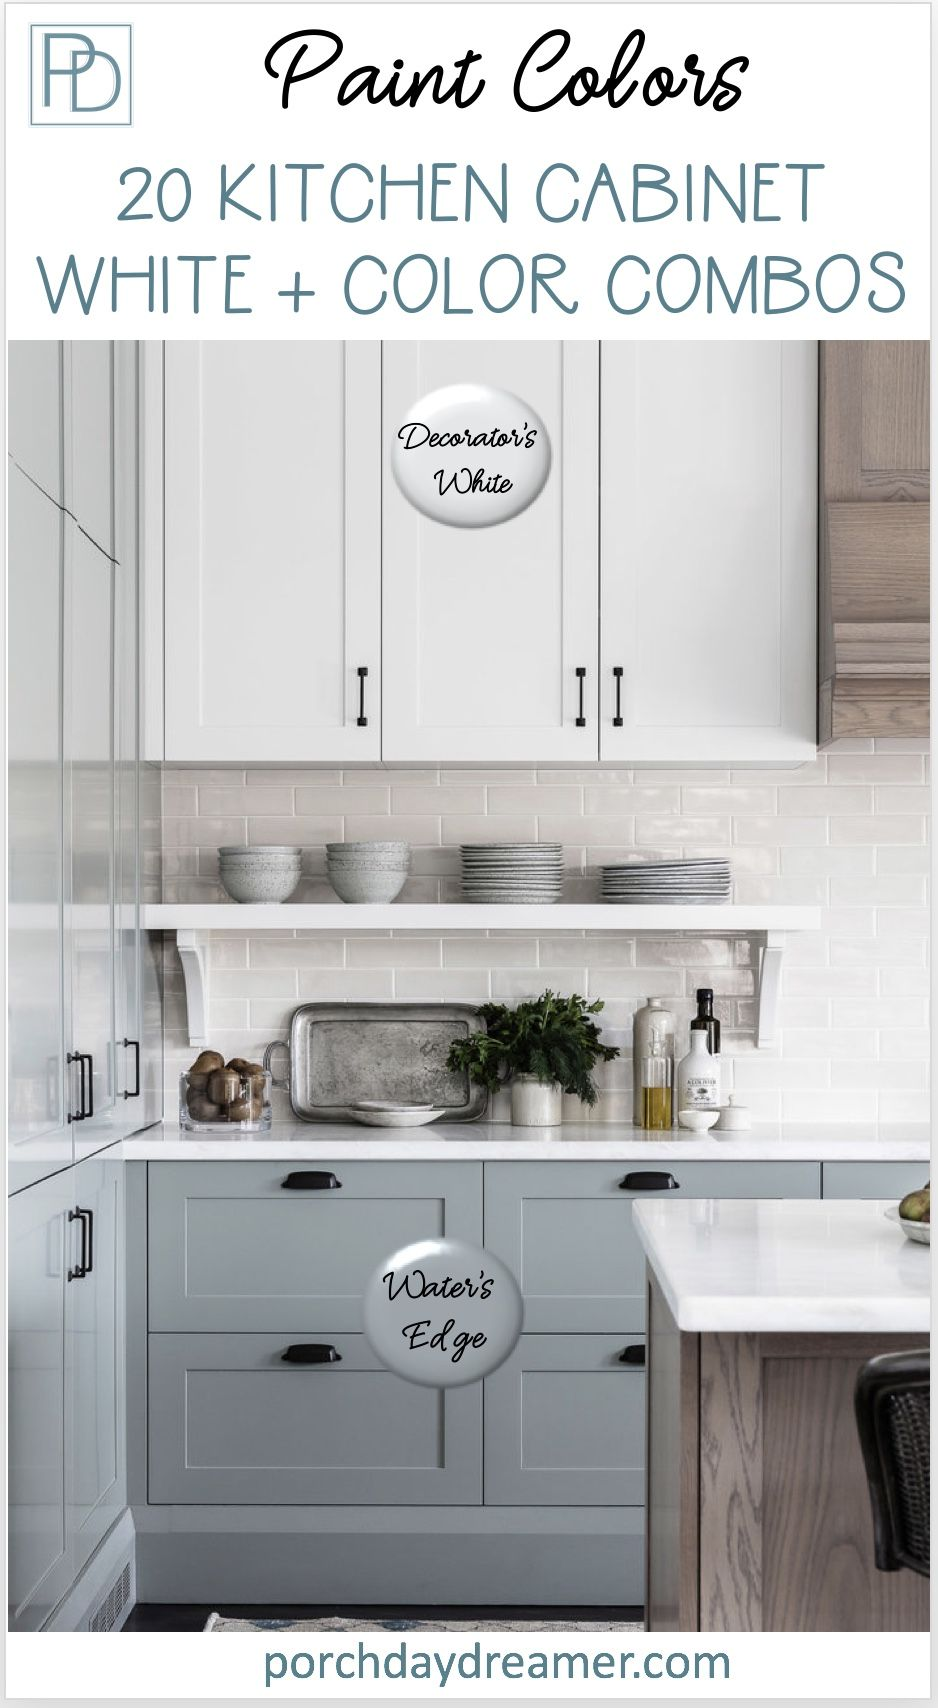 20 Cabinet Paint Color Combos For The Kitchen Kitchen Cabinets